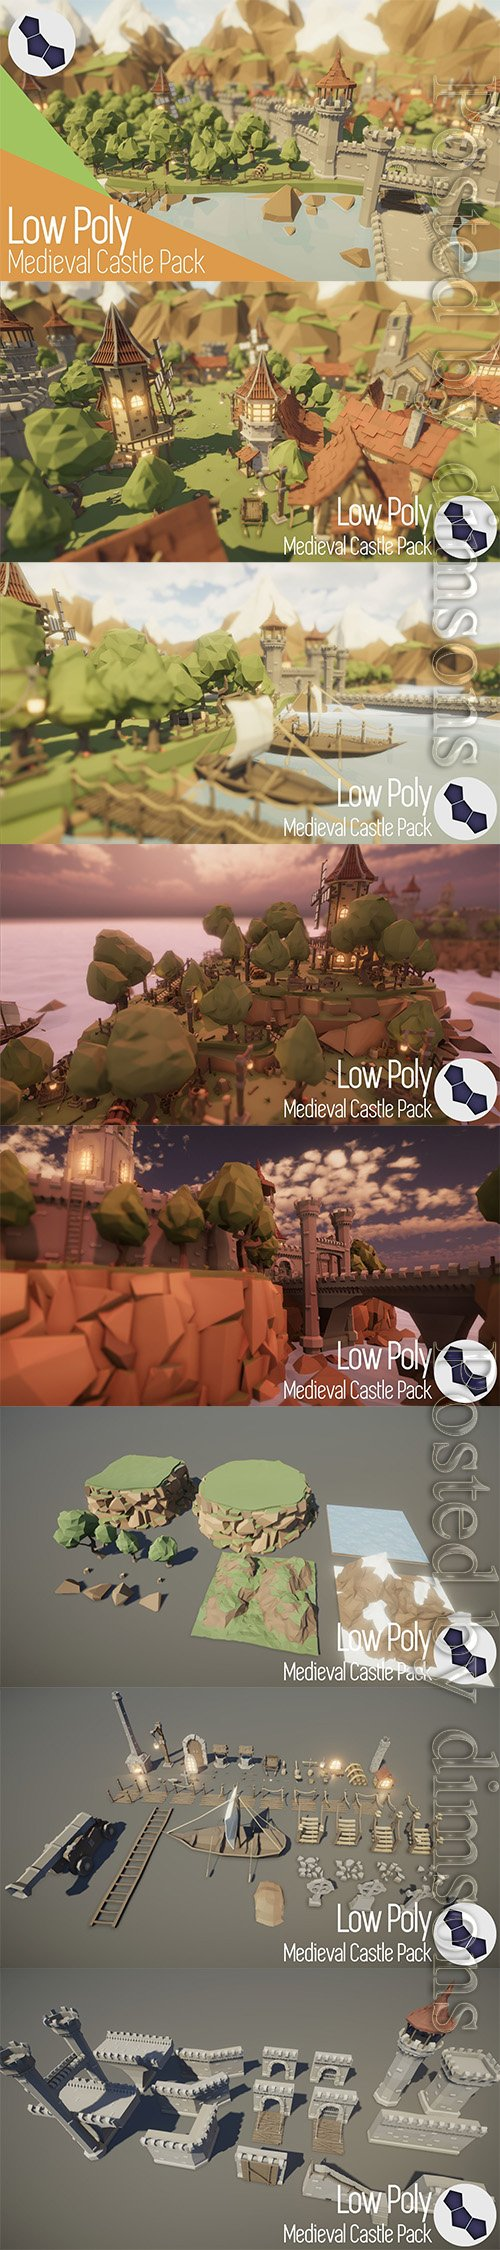 Low Poly Medieval Castle Pack Low-poly 3D model